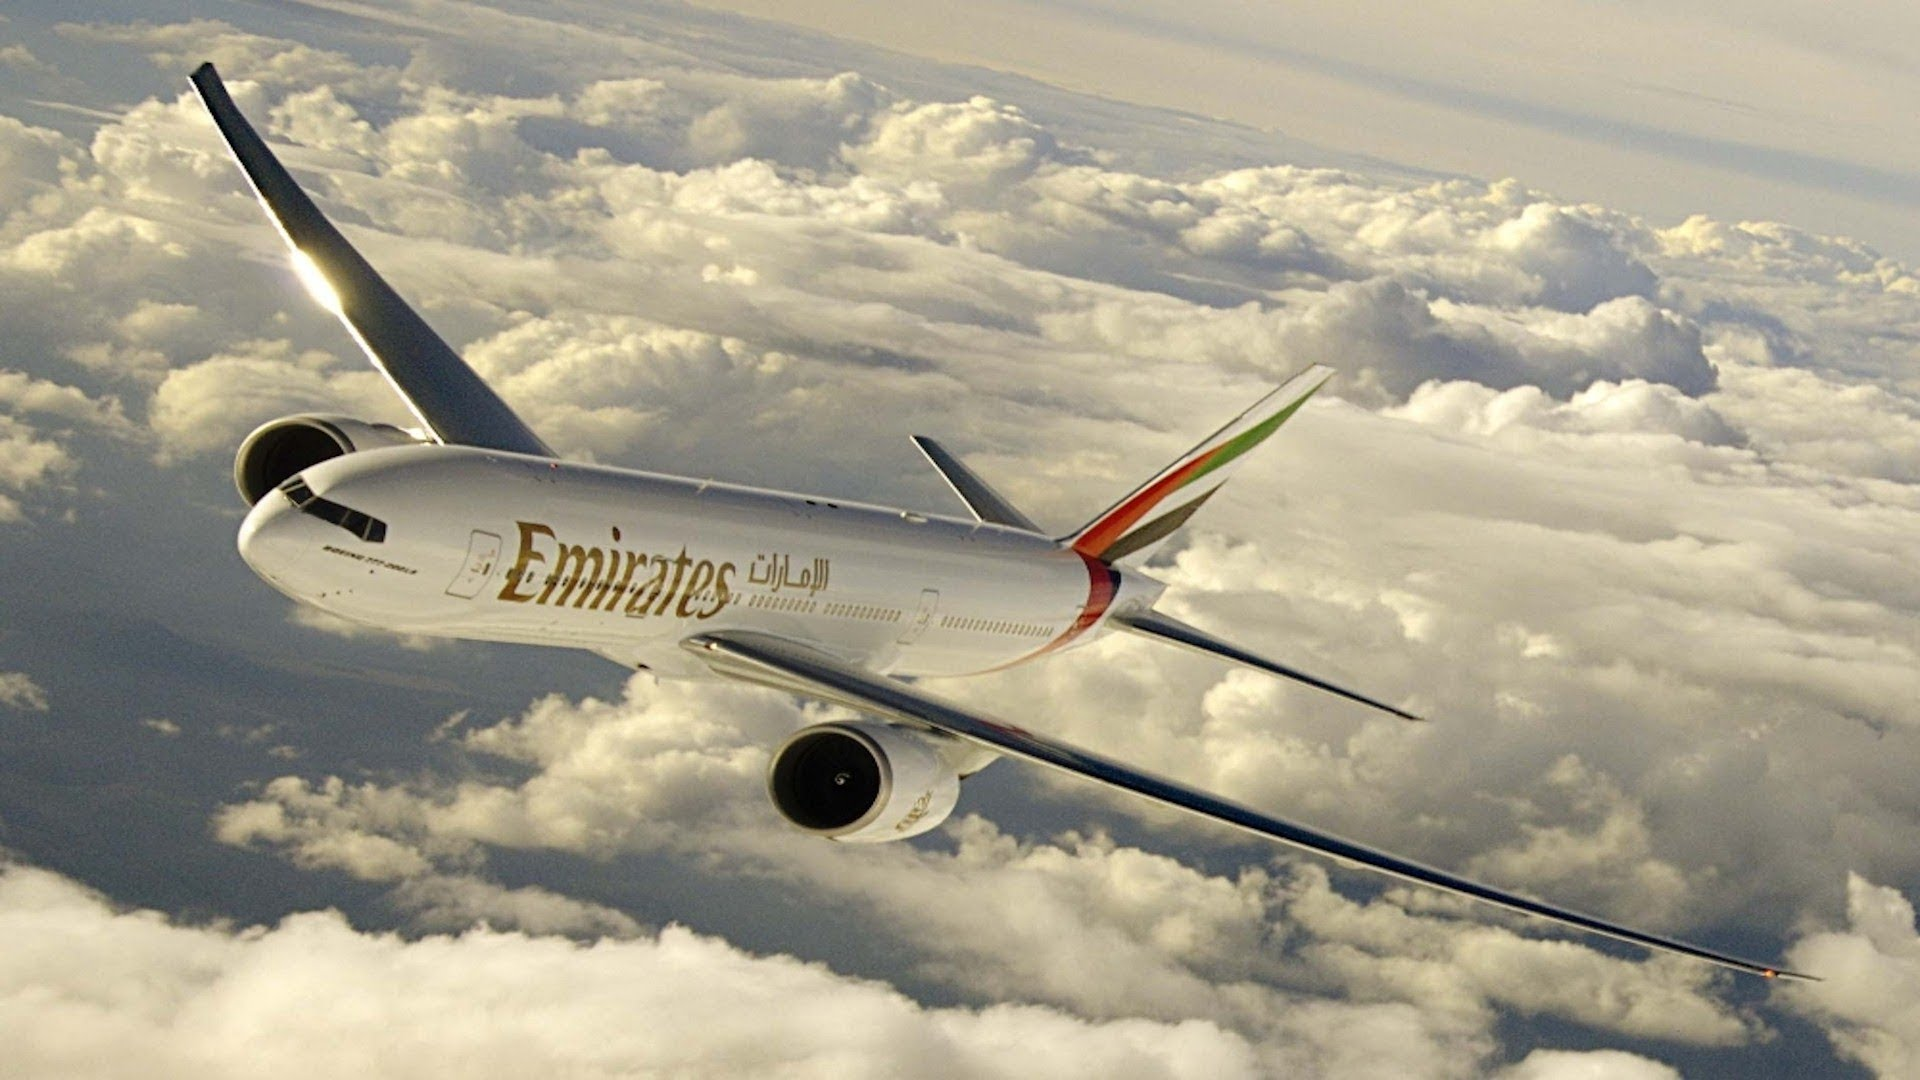 Emirates_Airlines_Boeing_777.jpg